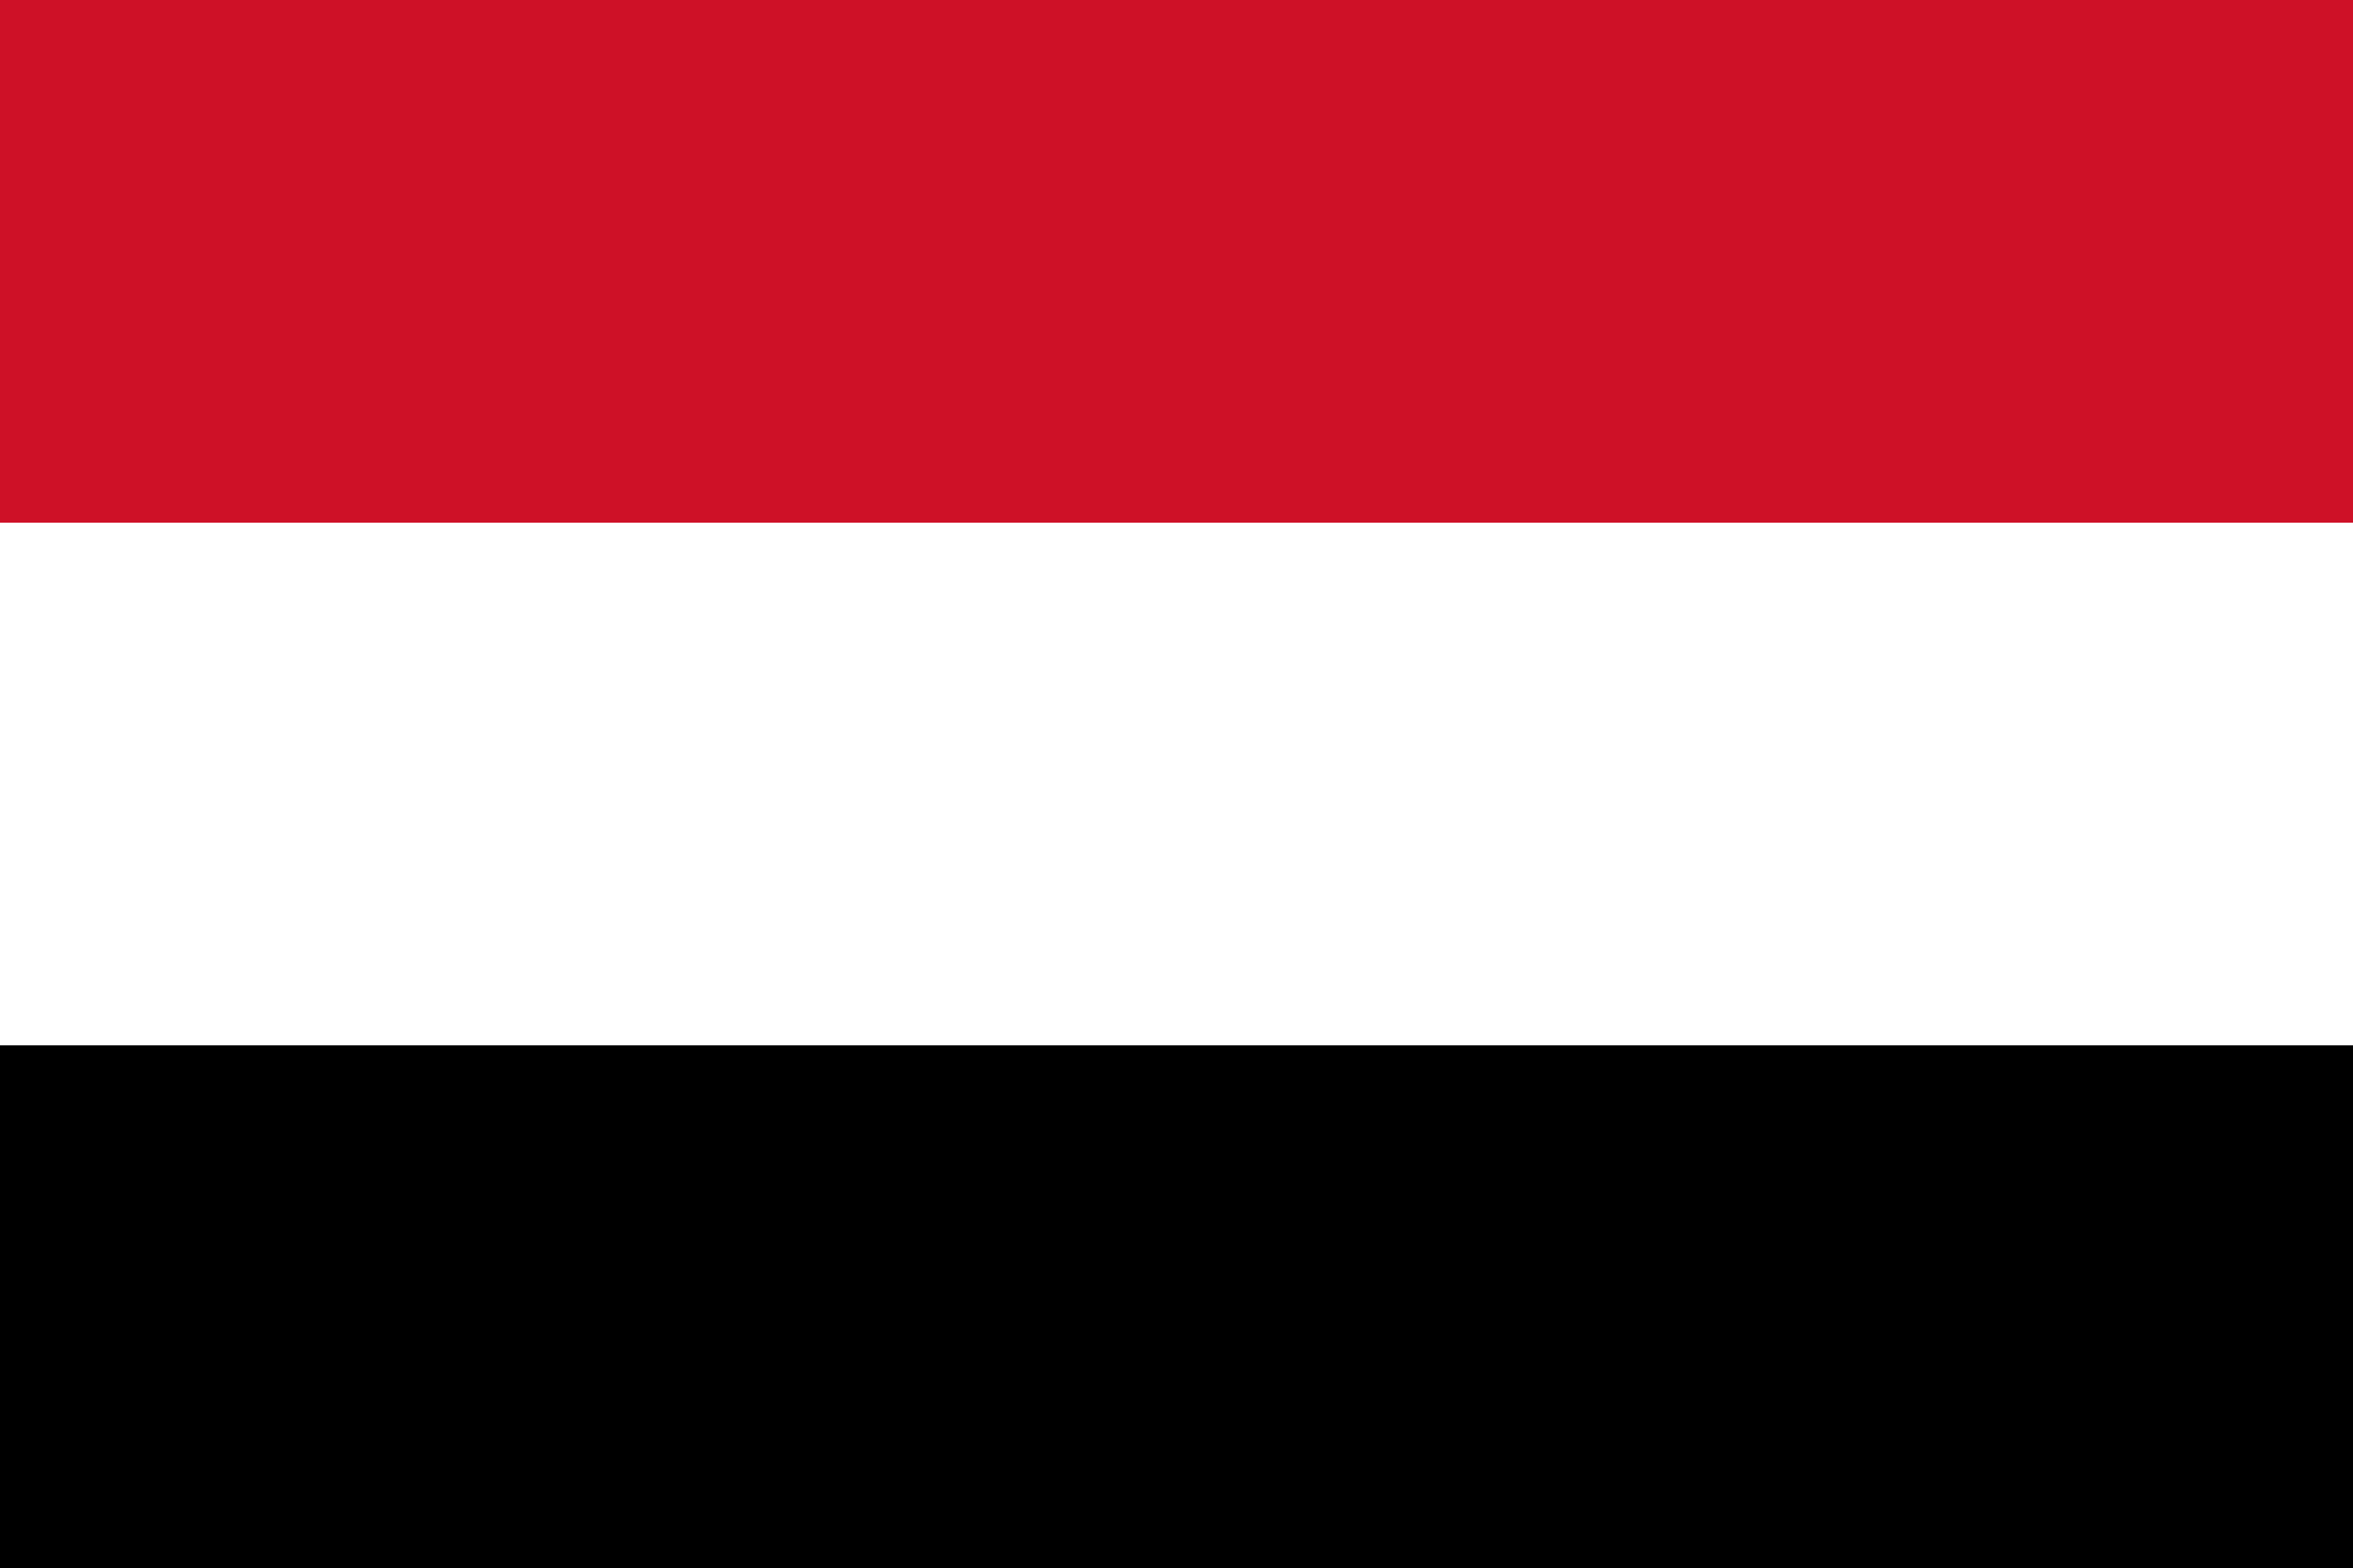 Yemen Flag Colours